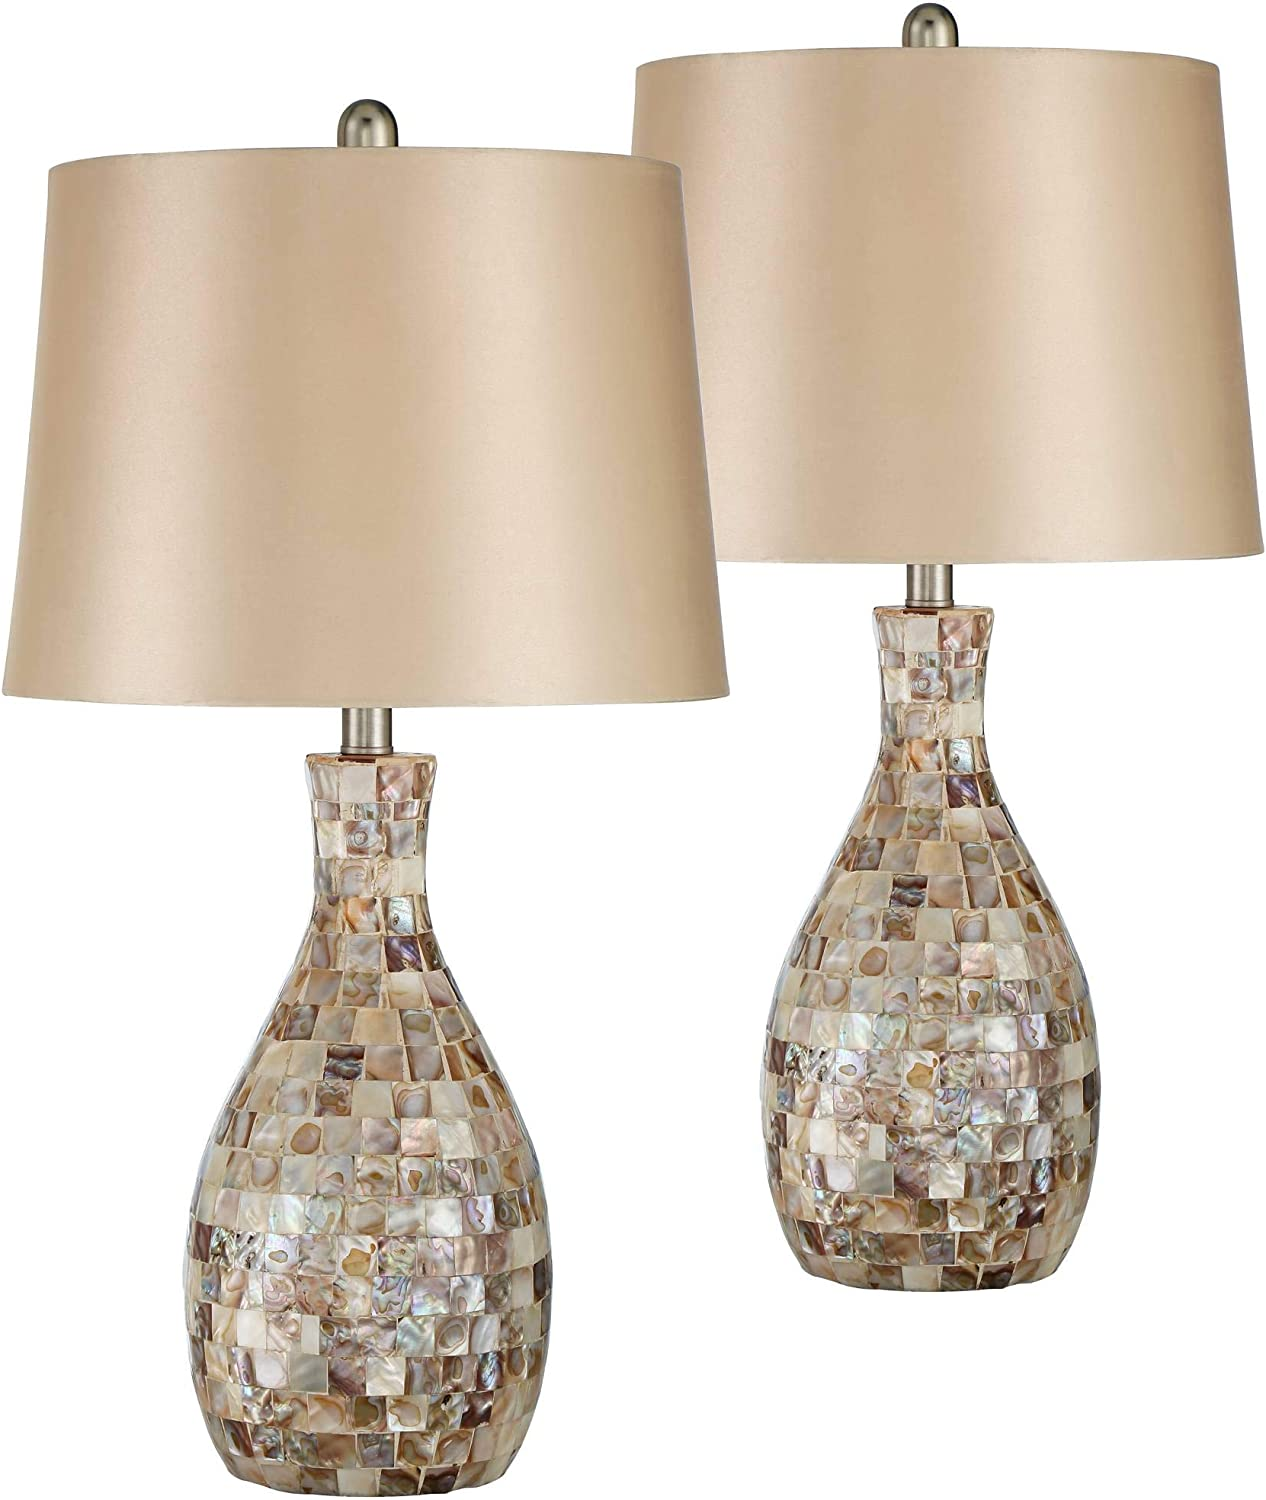 Annie Coastal Table Lamps Set of 2 Mosaic Tile Gold Fabric Tapered Drum Shade for Living Room Bedroom Bedside Nightstand Office Family - Regency Hill